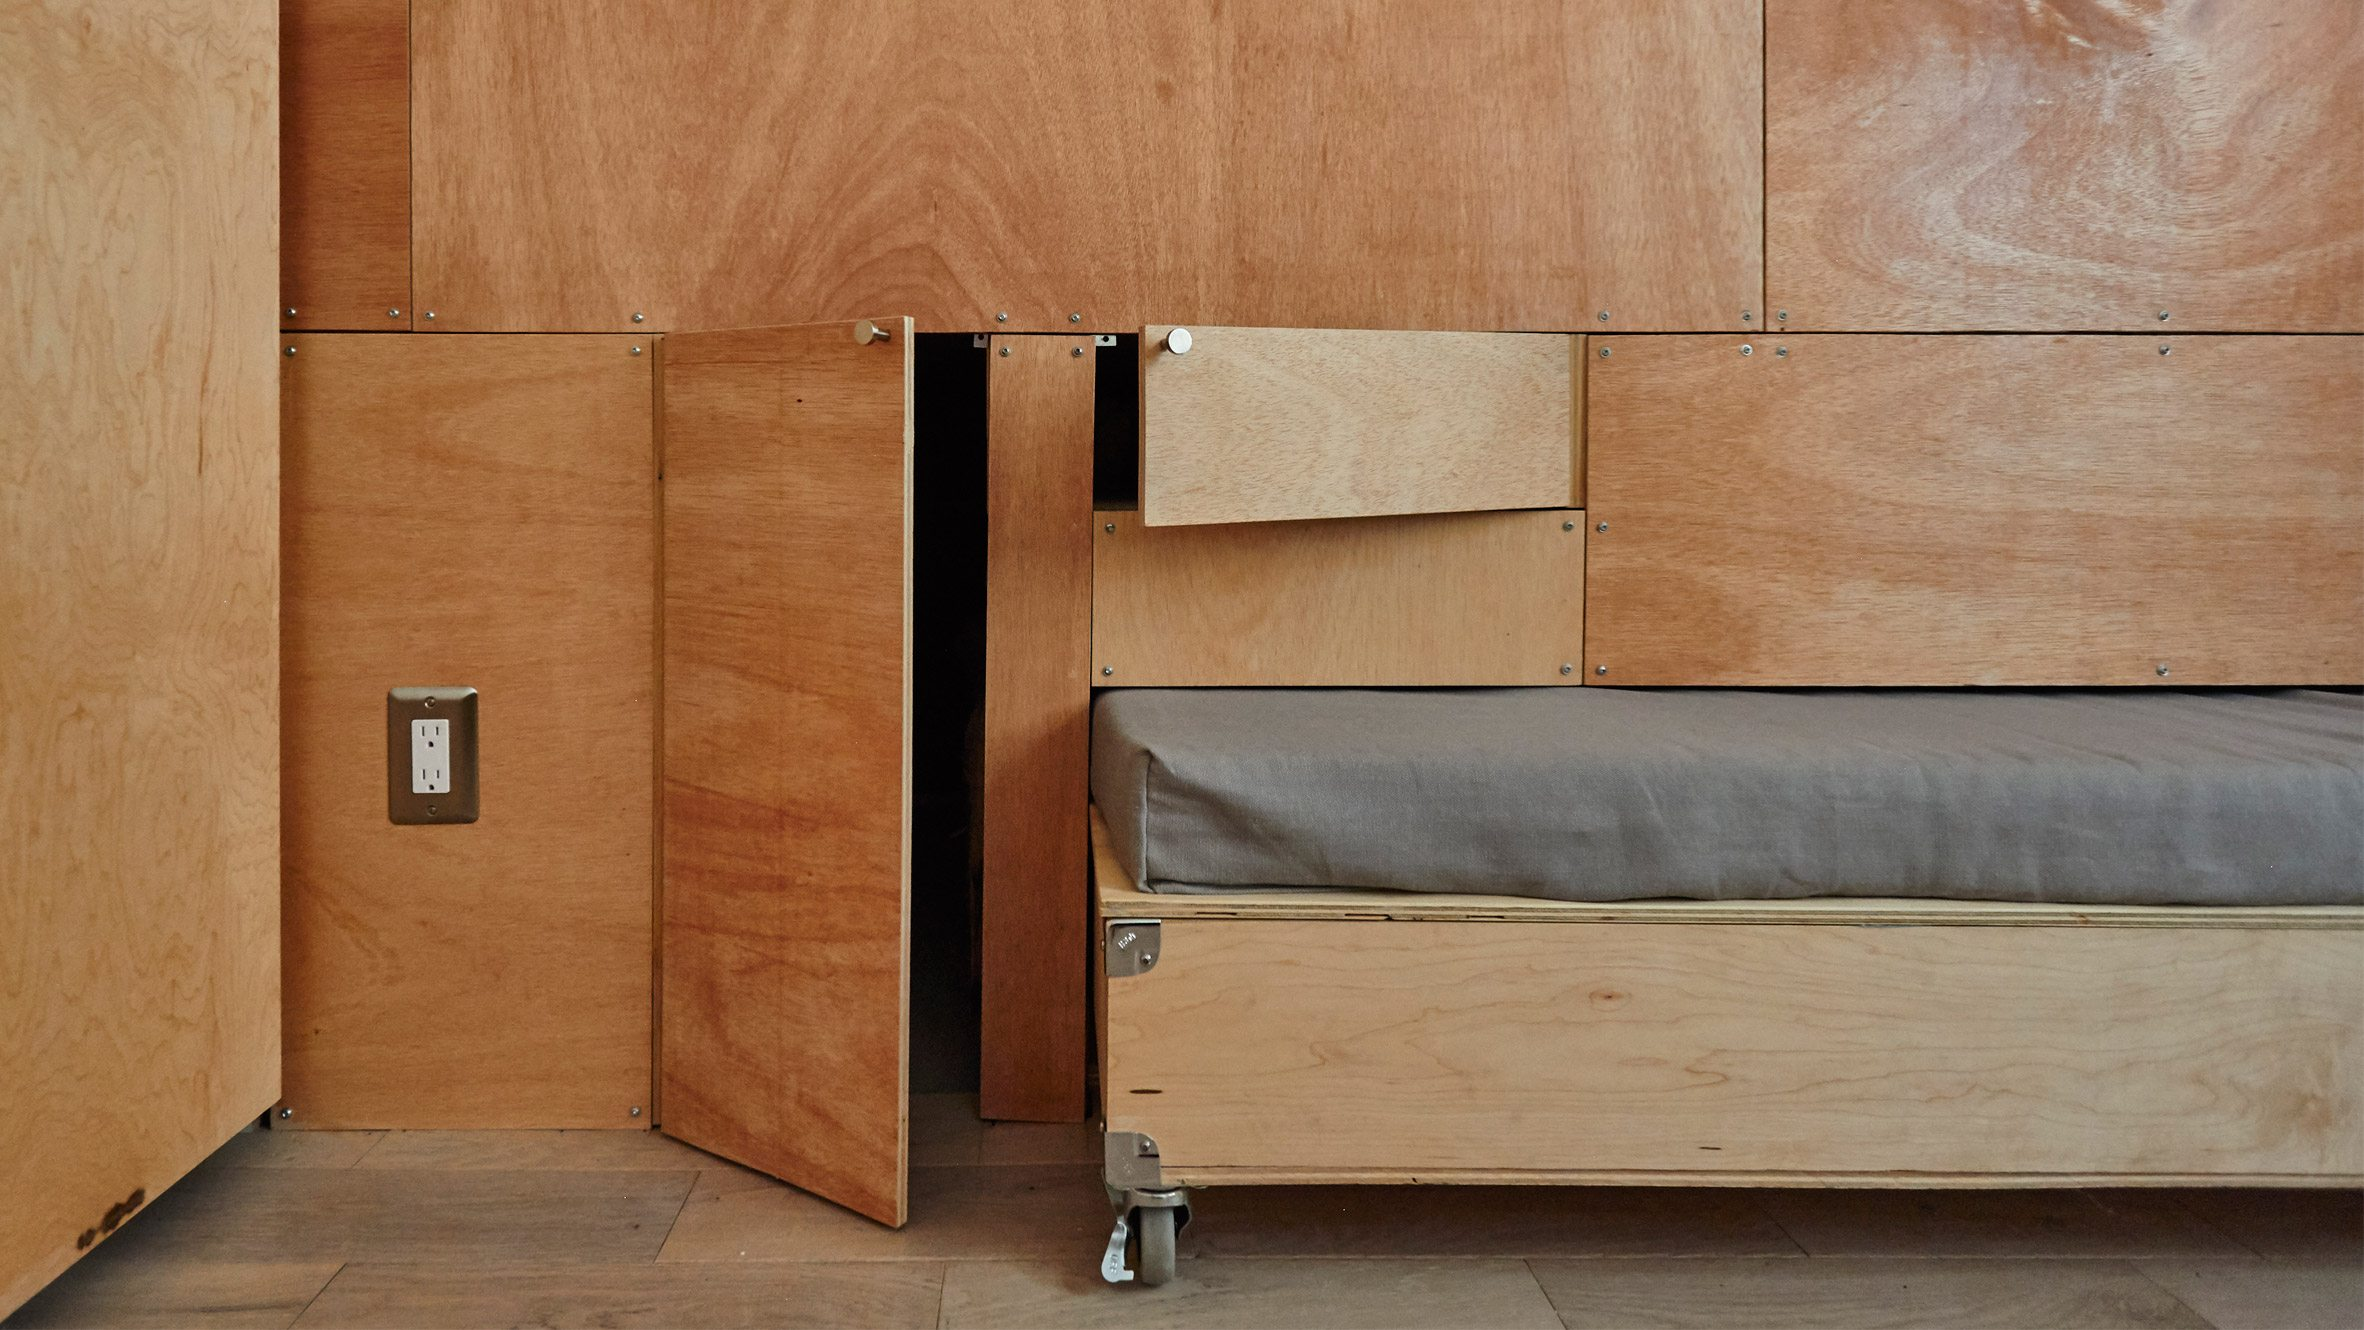 peter kostelov, sliding furniture